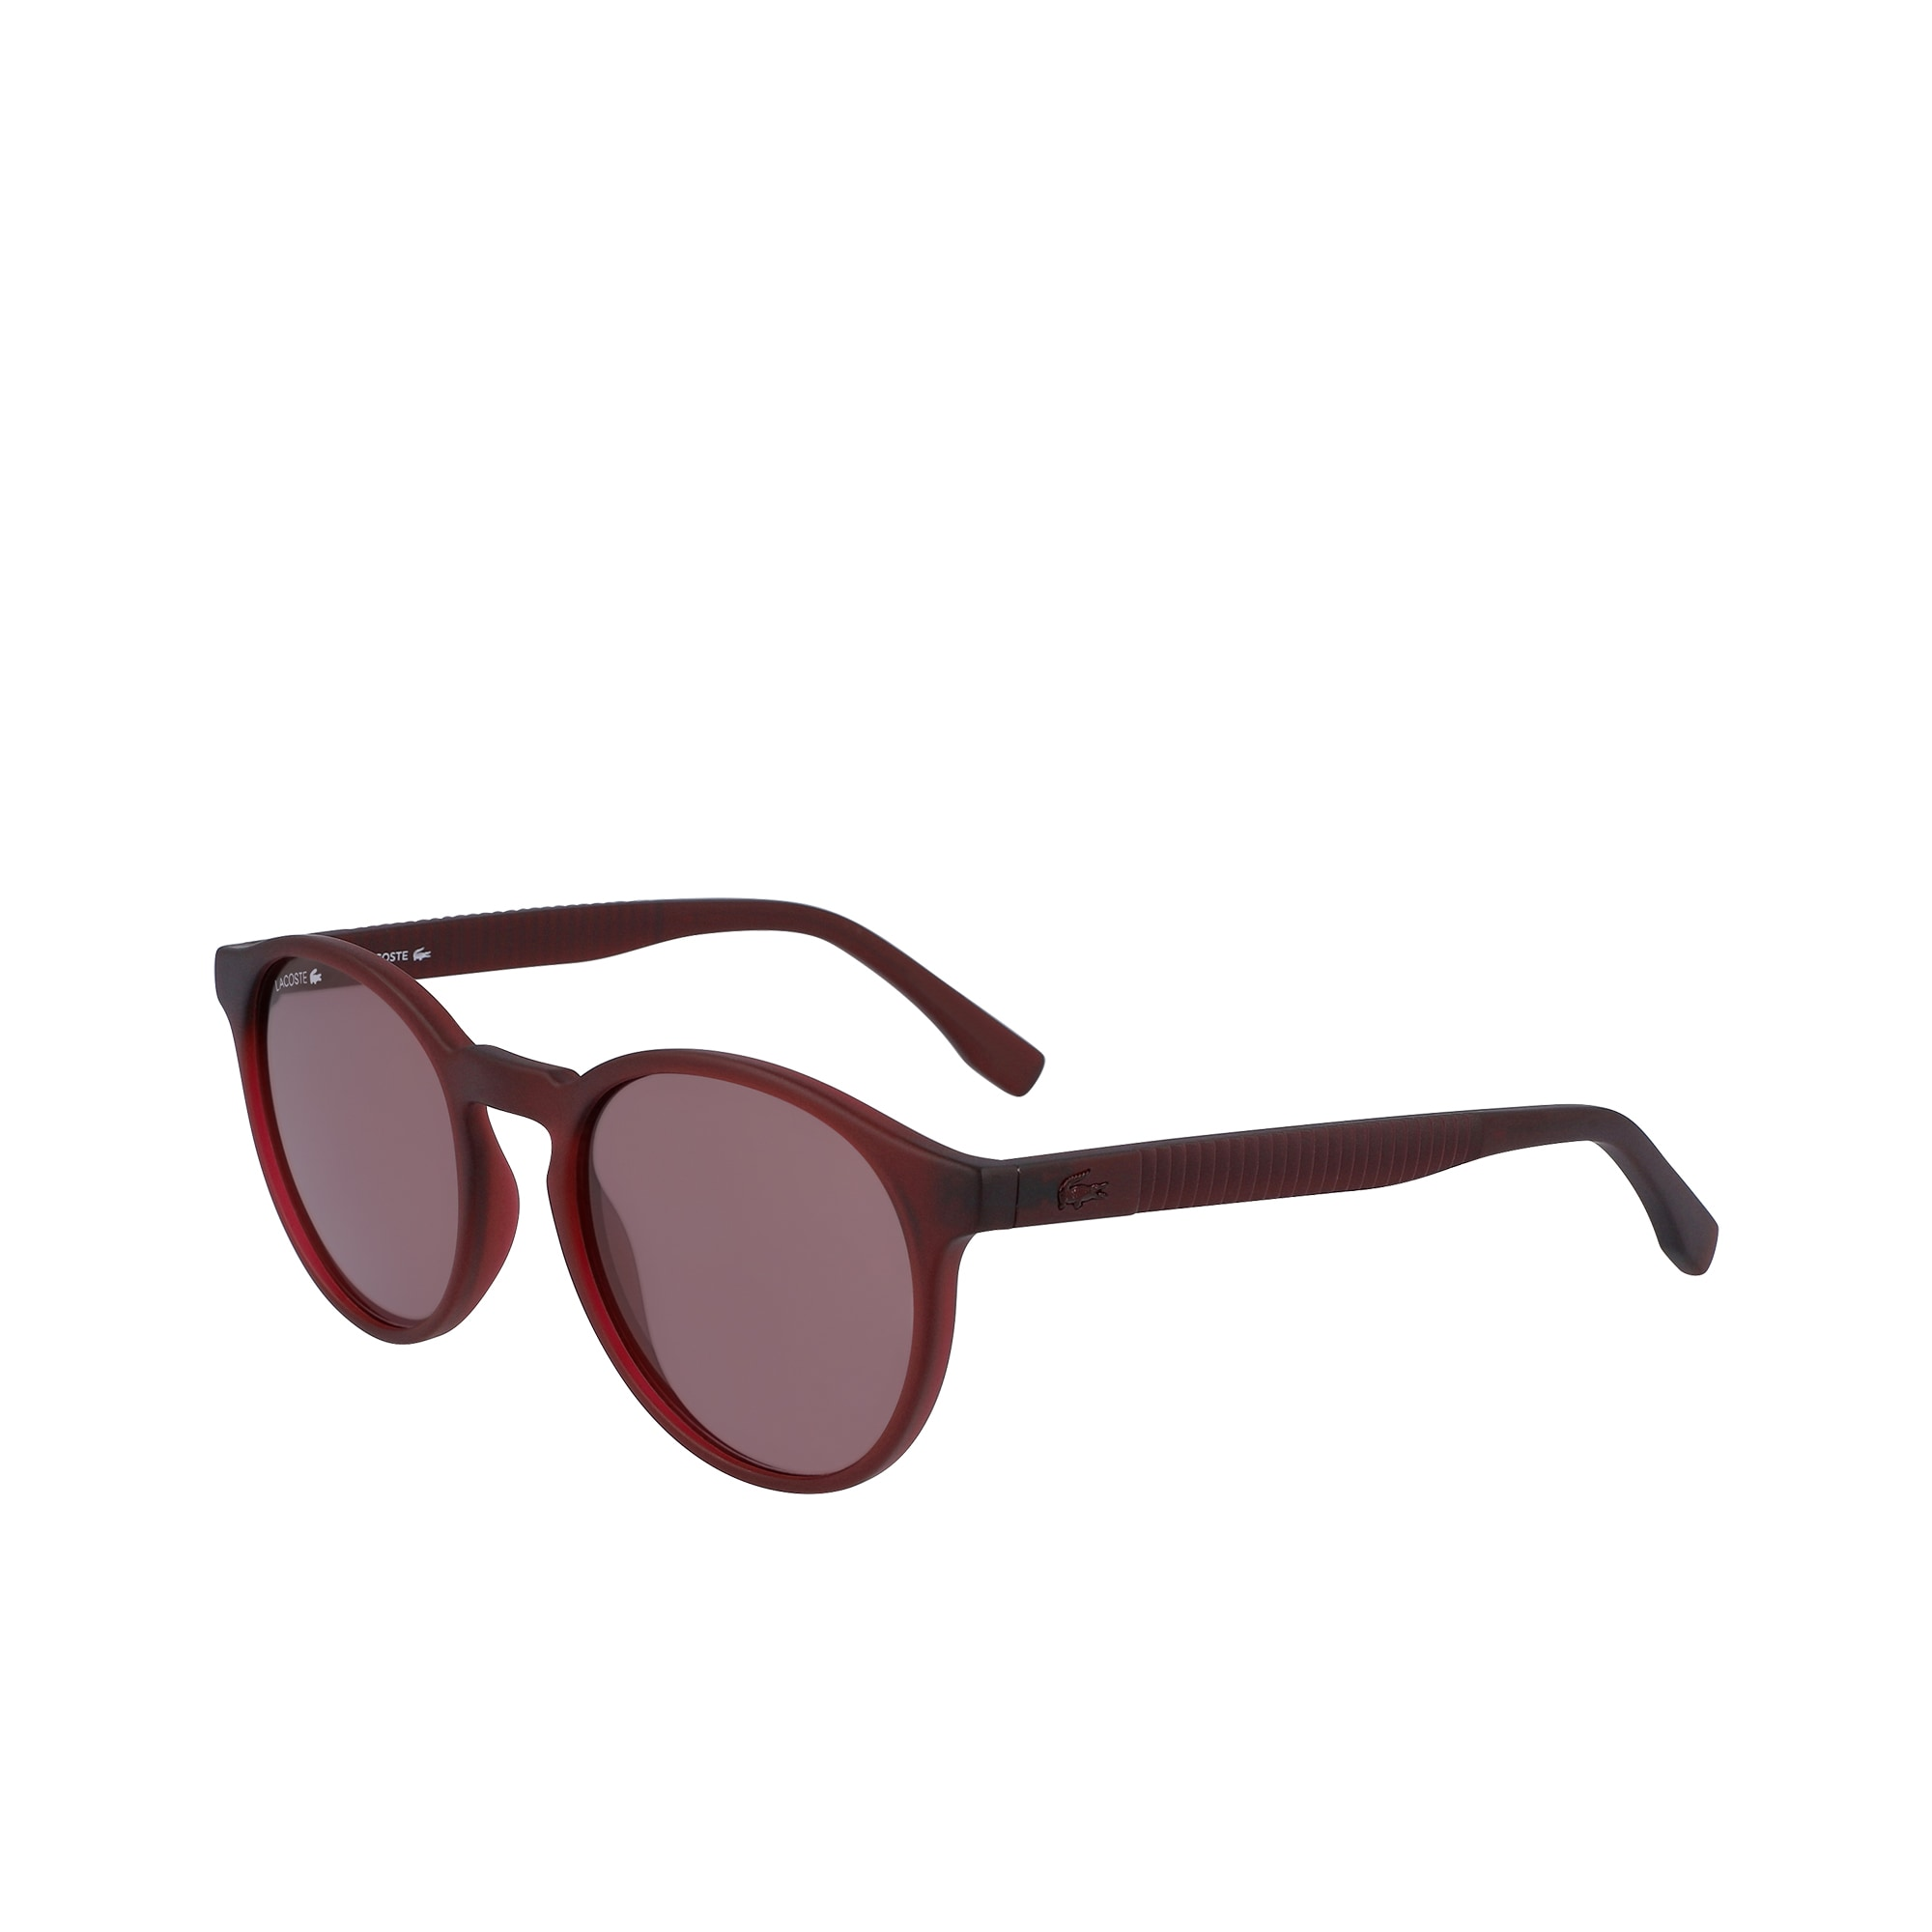 2ff1b5d5f763 Sunglasses for women | Accessories | LACOSTE